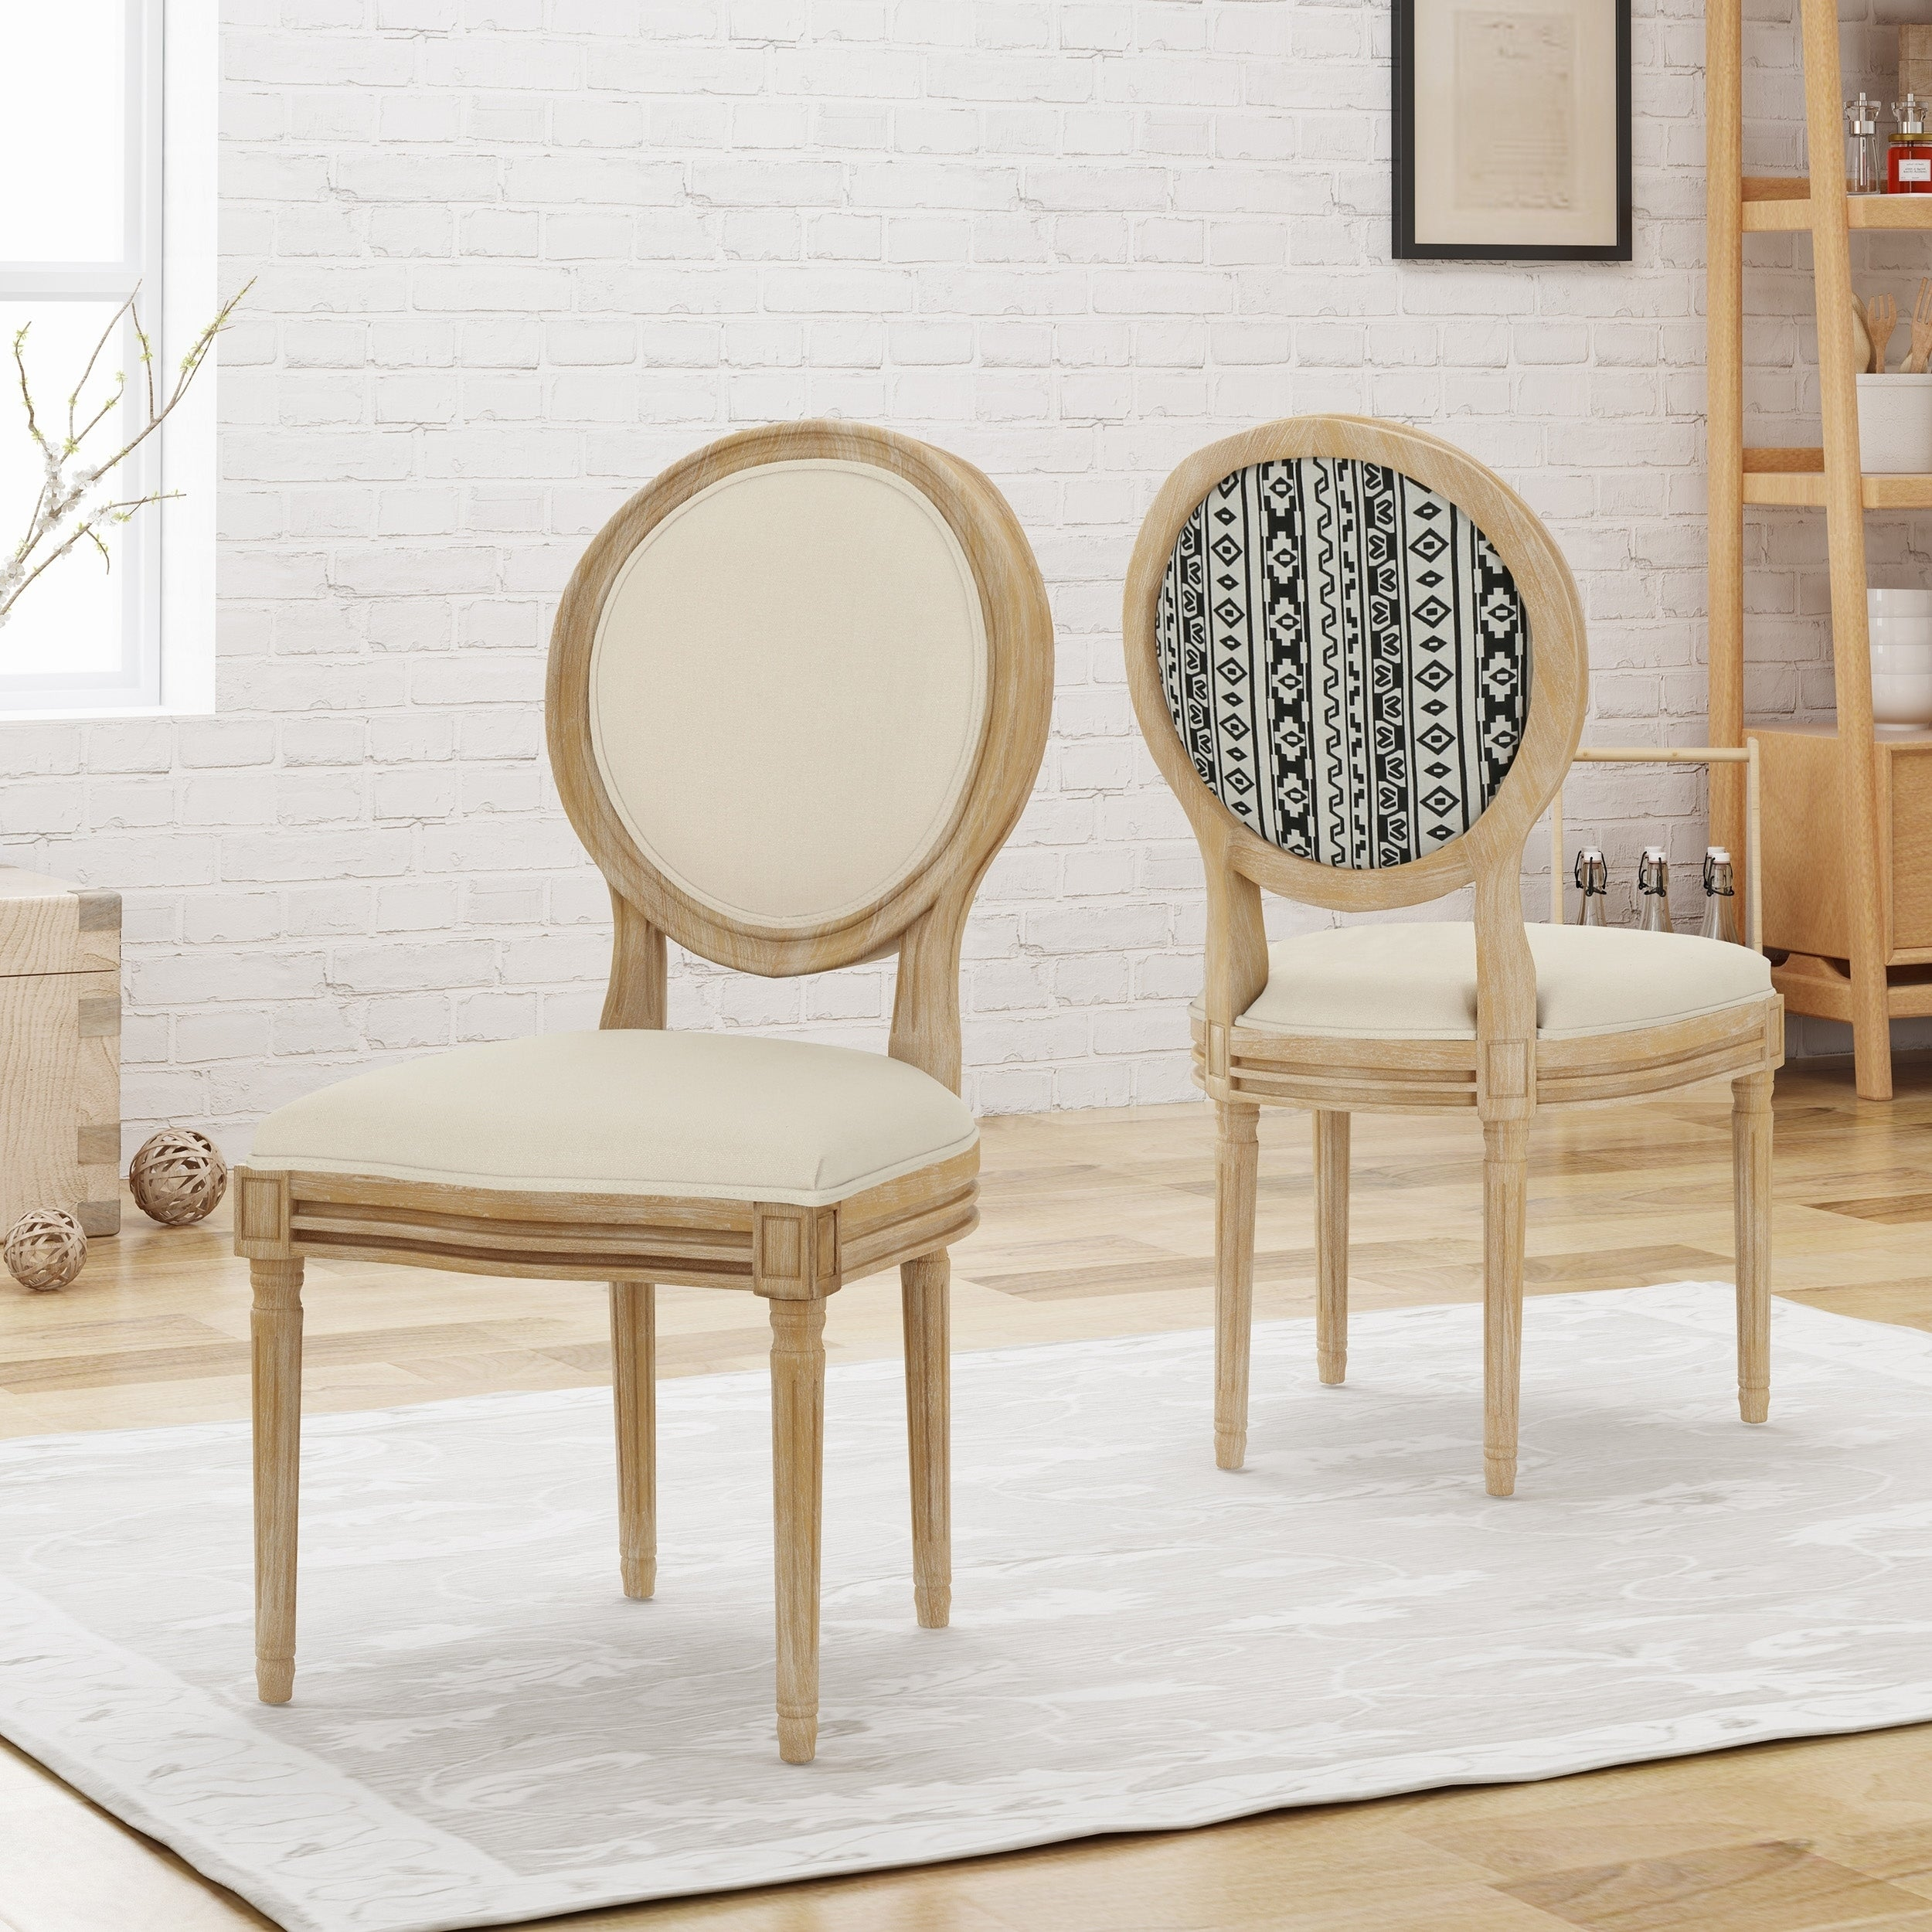 c45069c3e9 Shop Phinnaeus Upholstered Farmhouse Dining Chairs (Set of 2) by  Christopher Knight Home - On Sale - Free Shipping Today - Overstock -  22995822